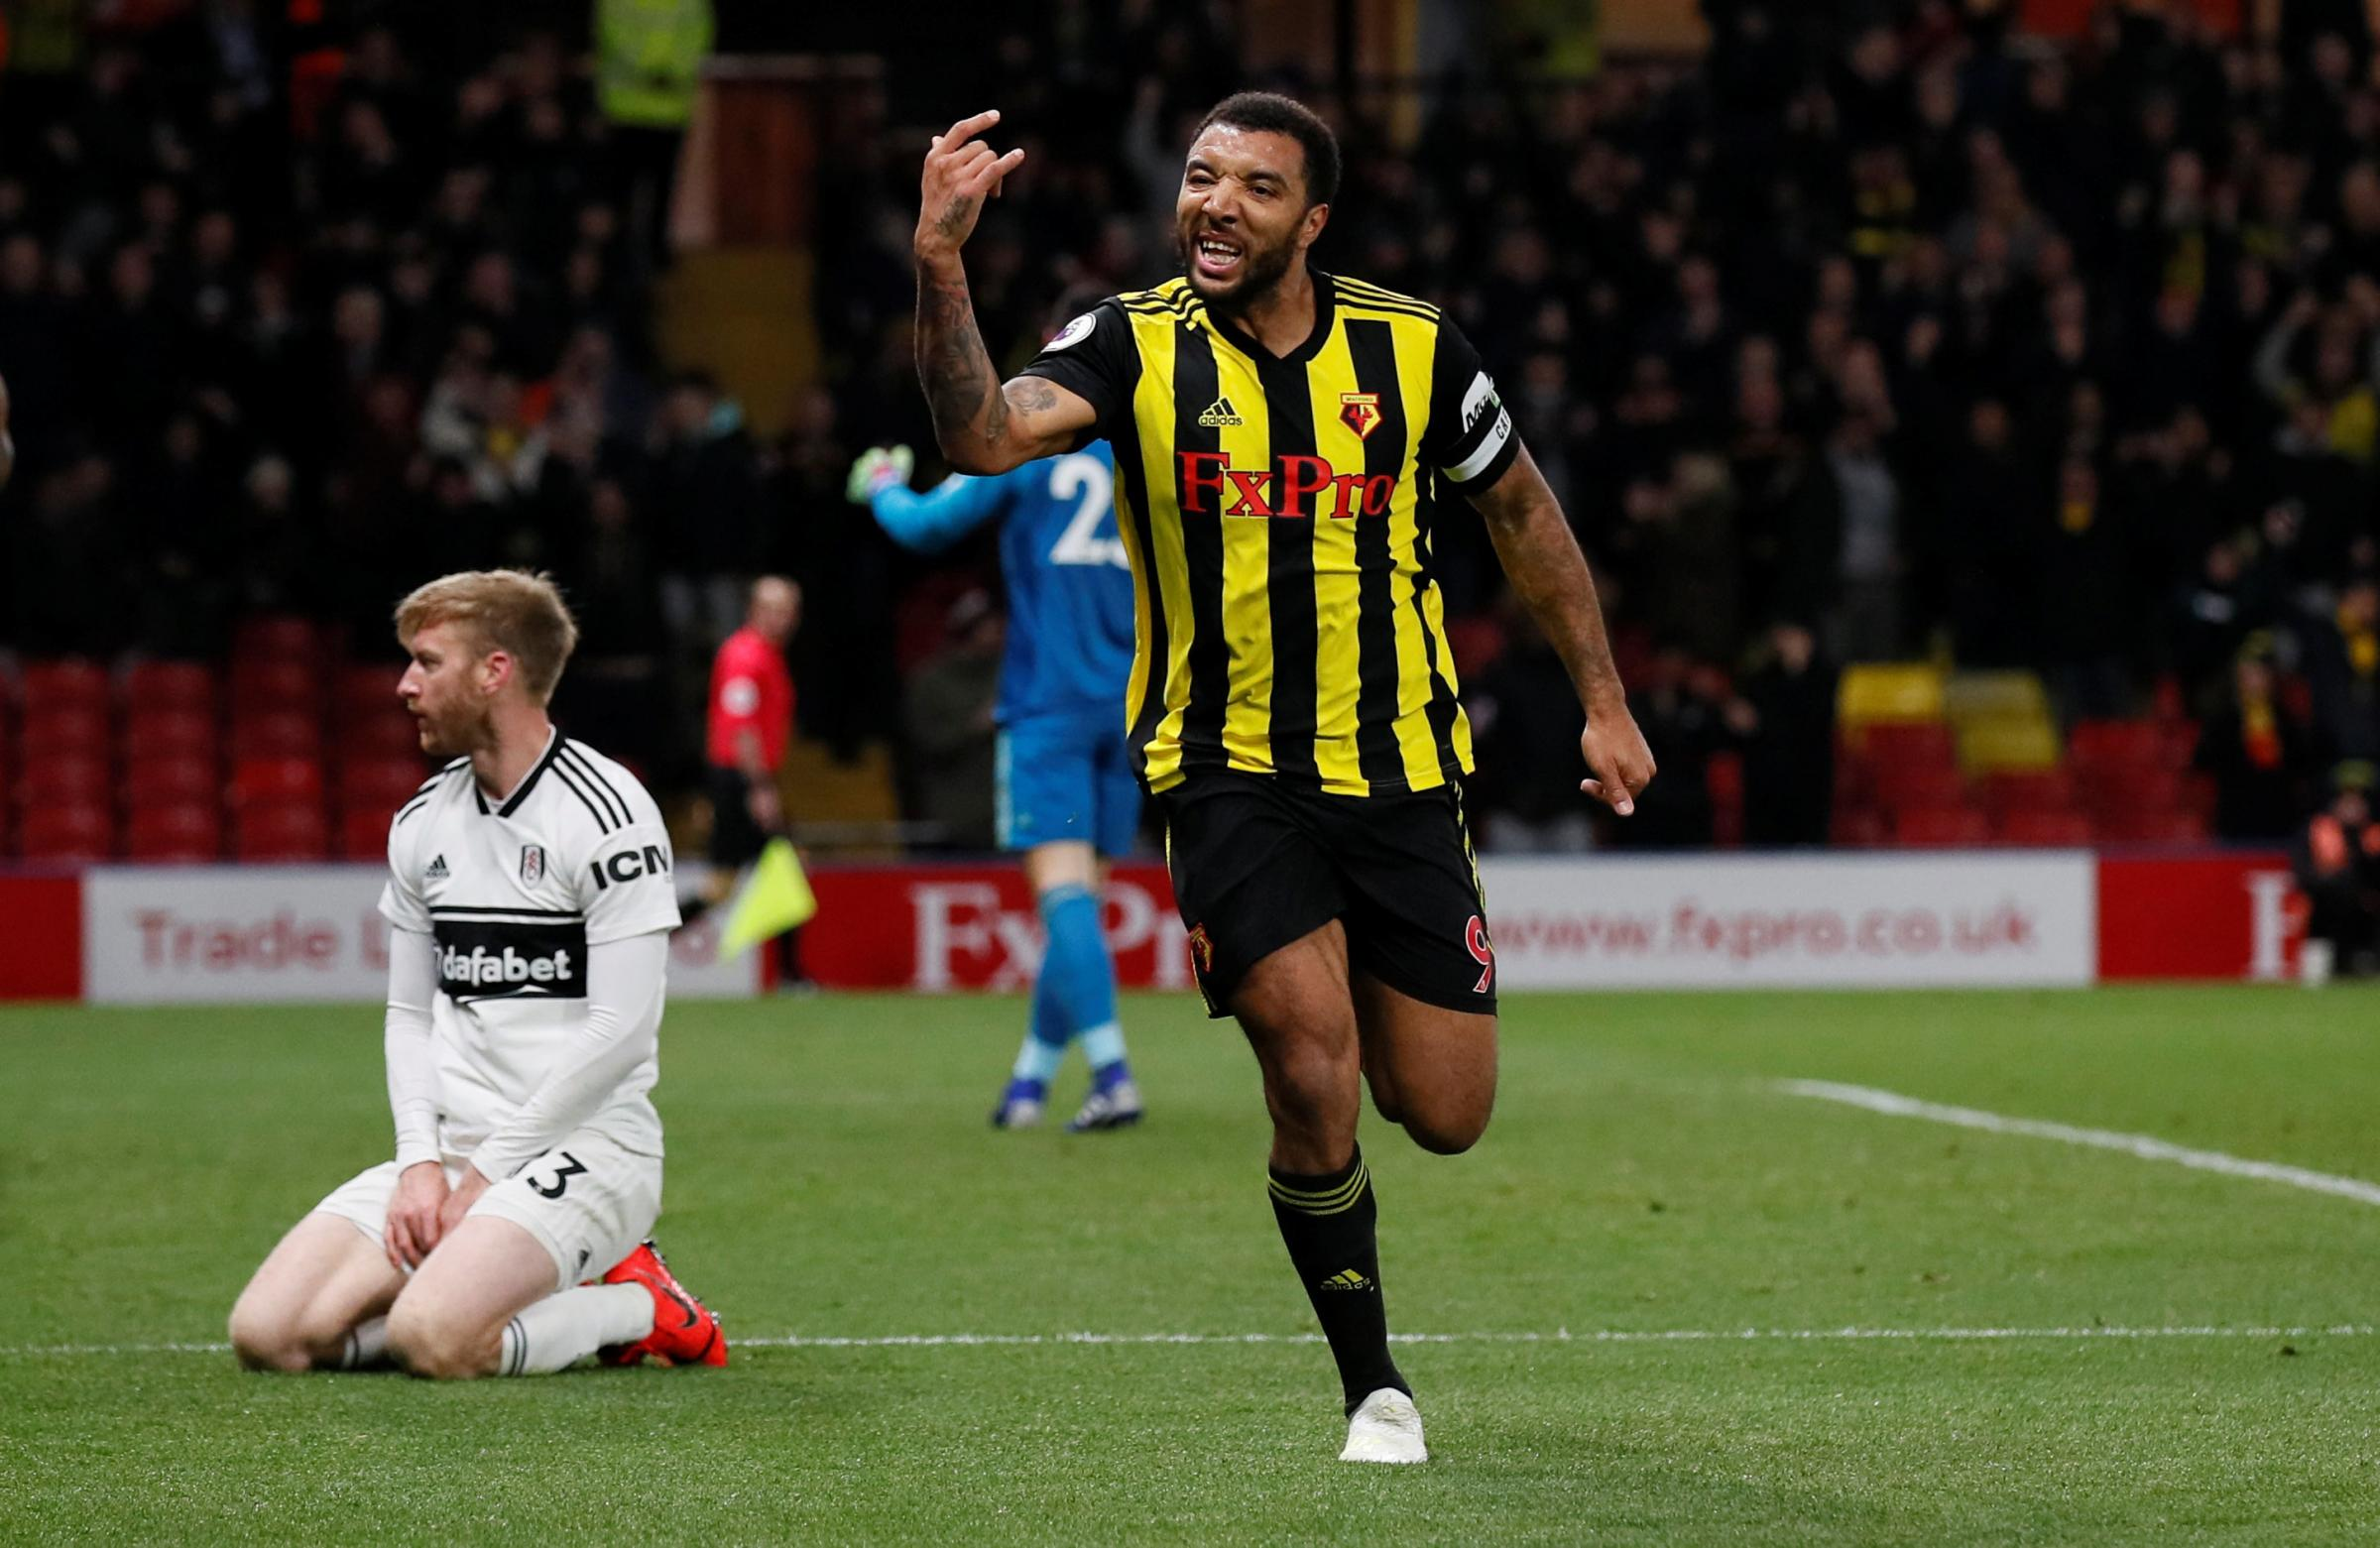 Troy Deeney celebrates scoring against Fulham. Picture: Action Images